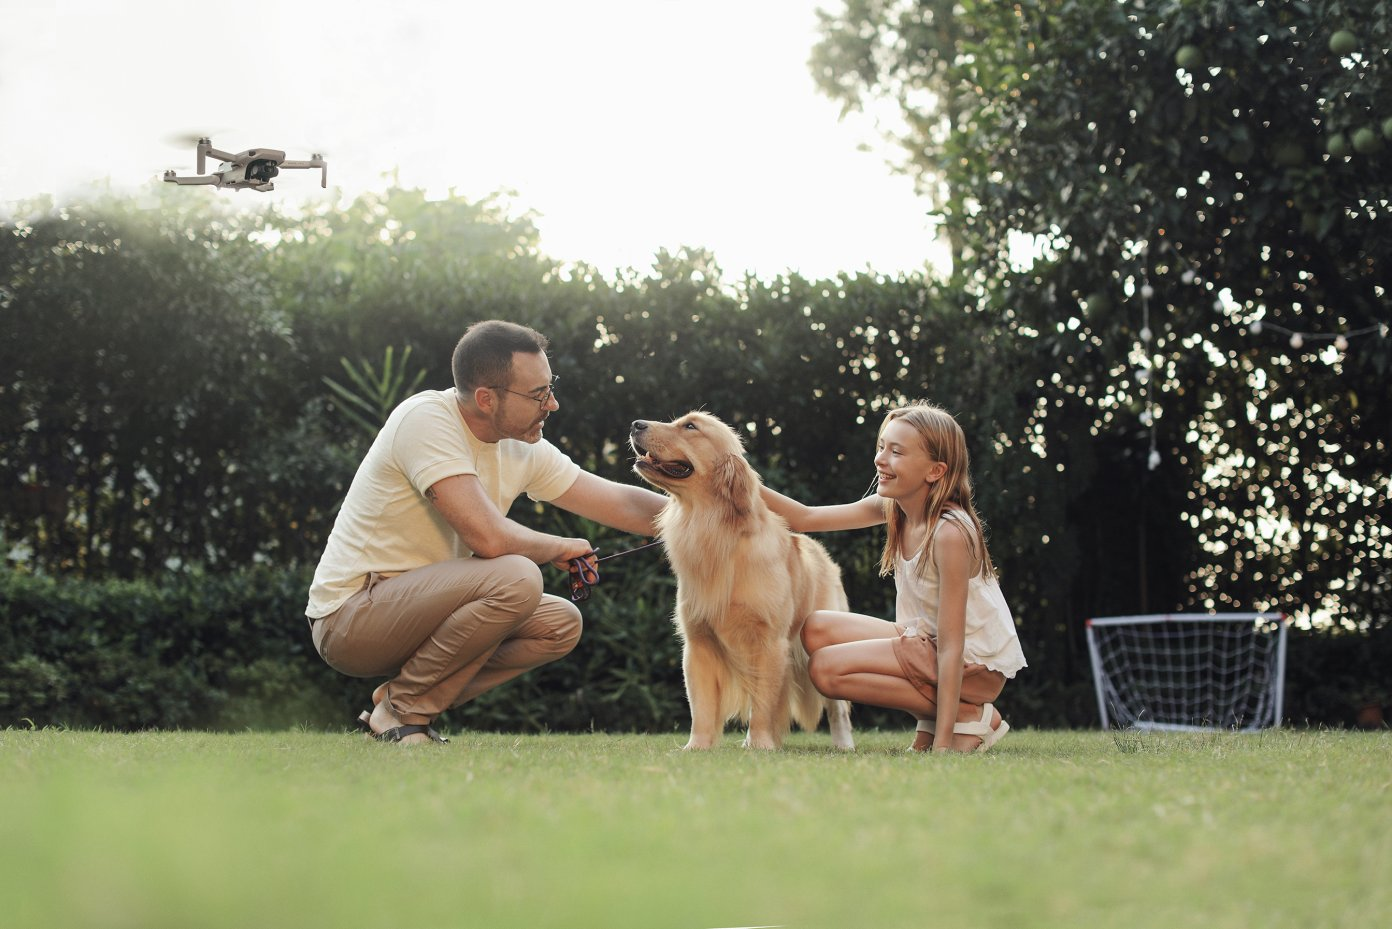 Family with dog and DJI Mavic Mini flying in background